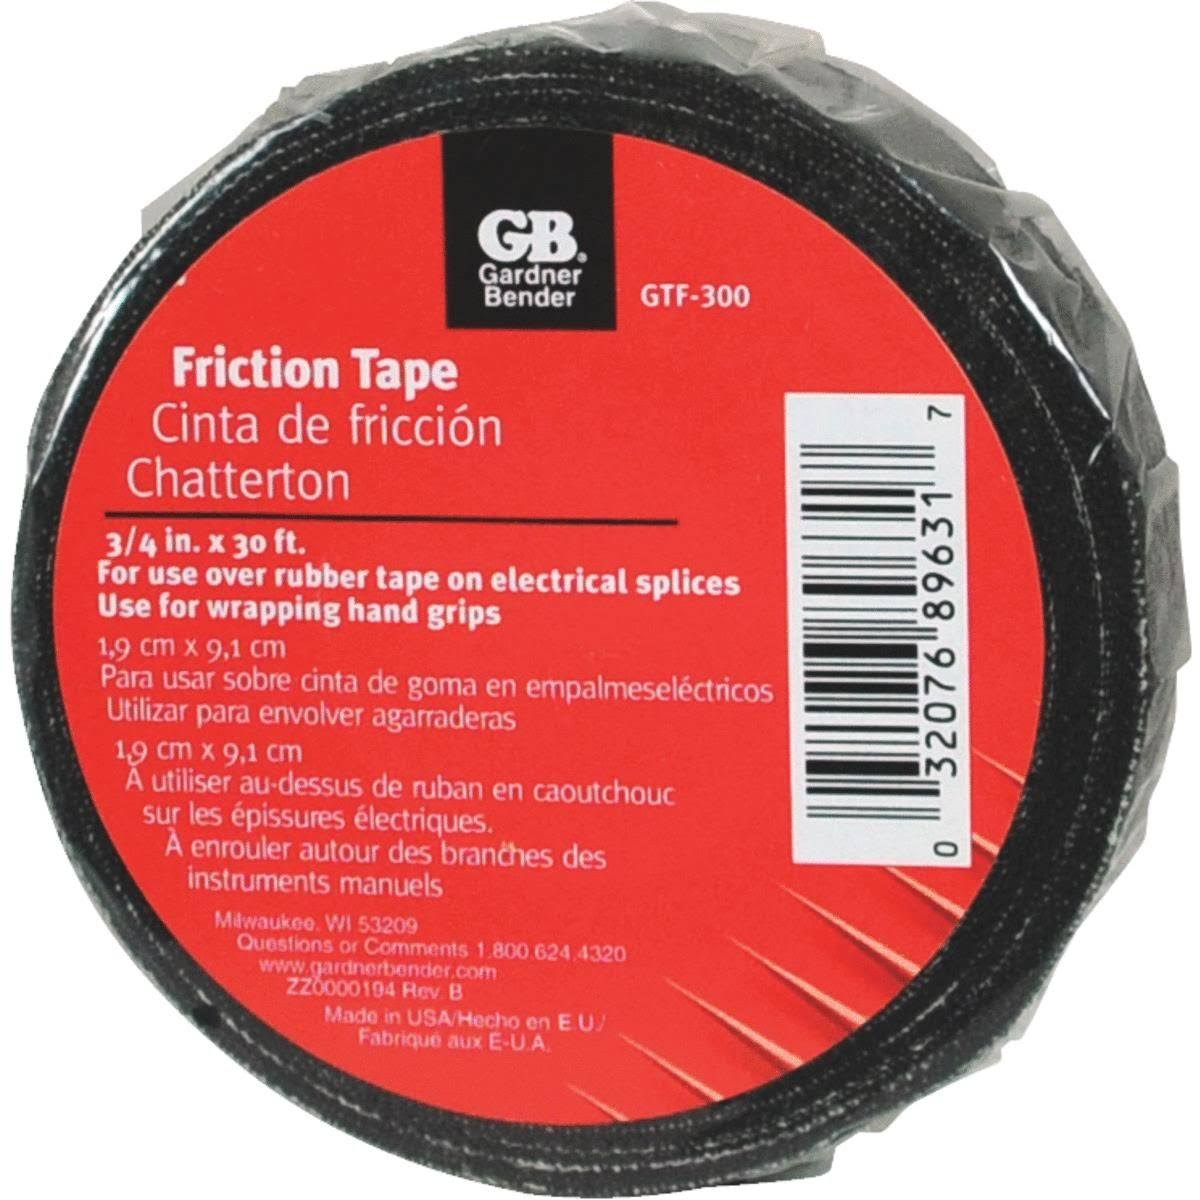 "Gardner Bender Gtf-300 Friction Tape - Black, 3/4"" x 30'"